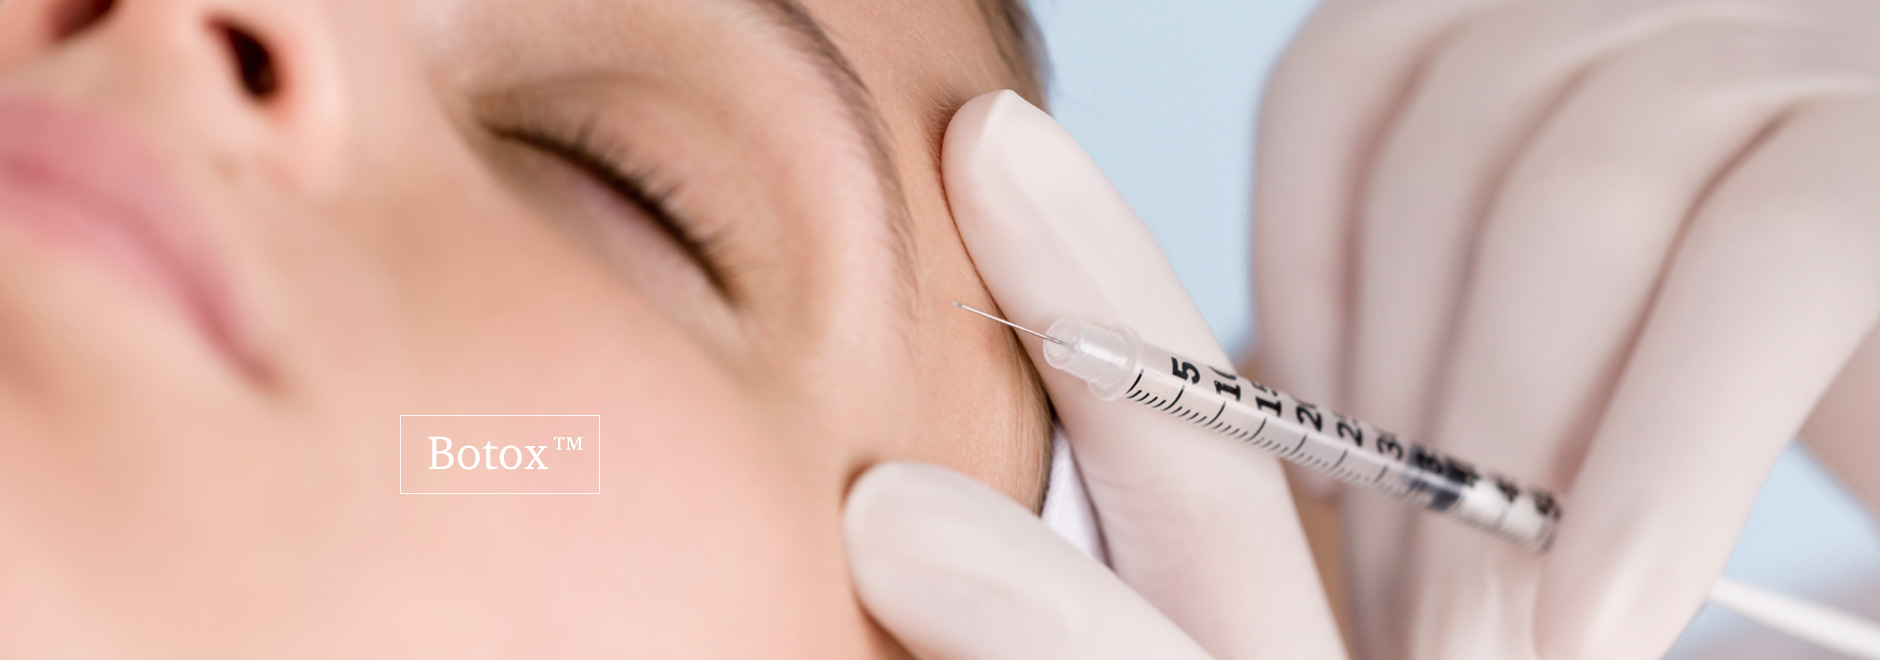 botox-somerset-west